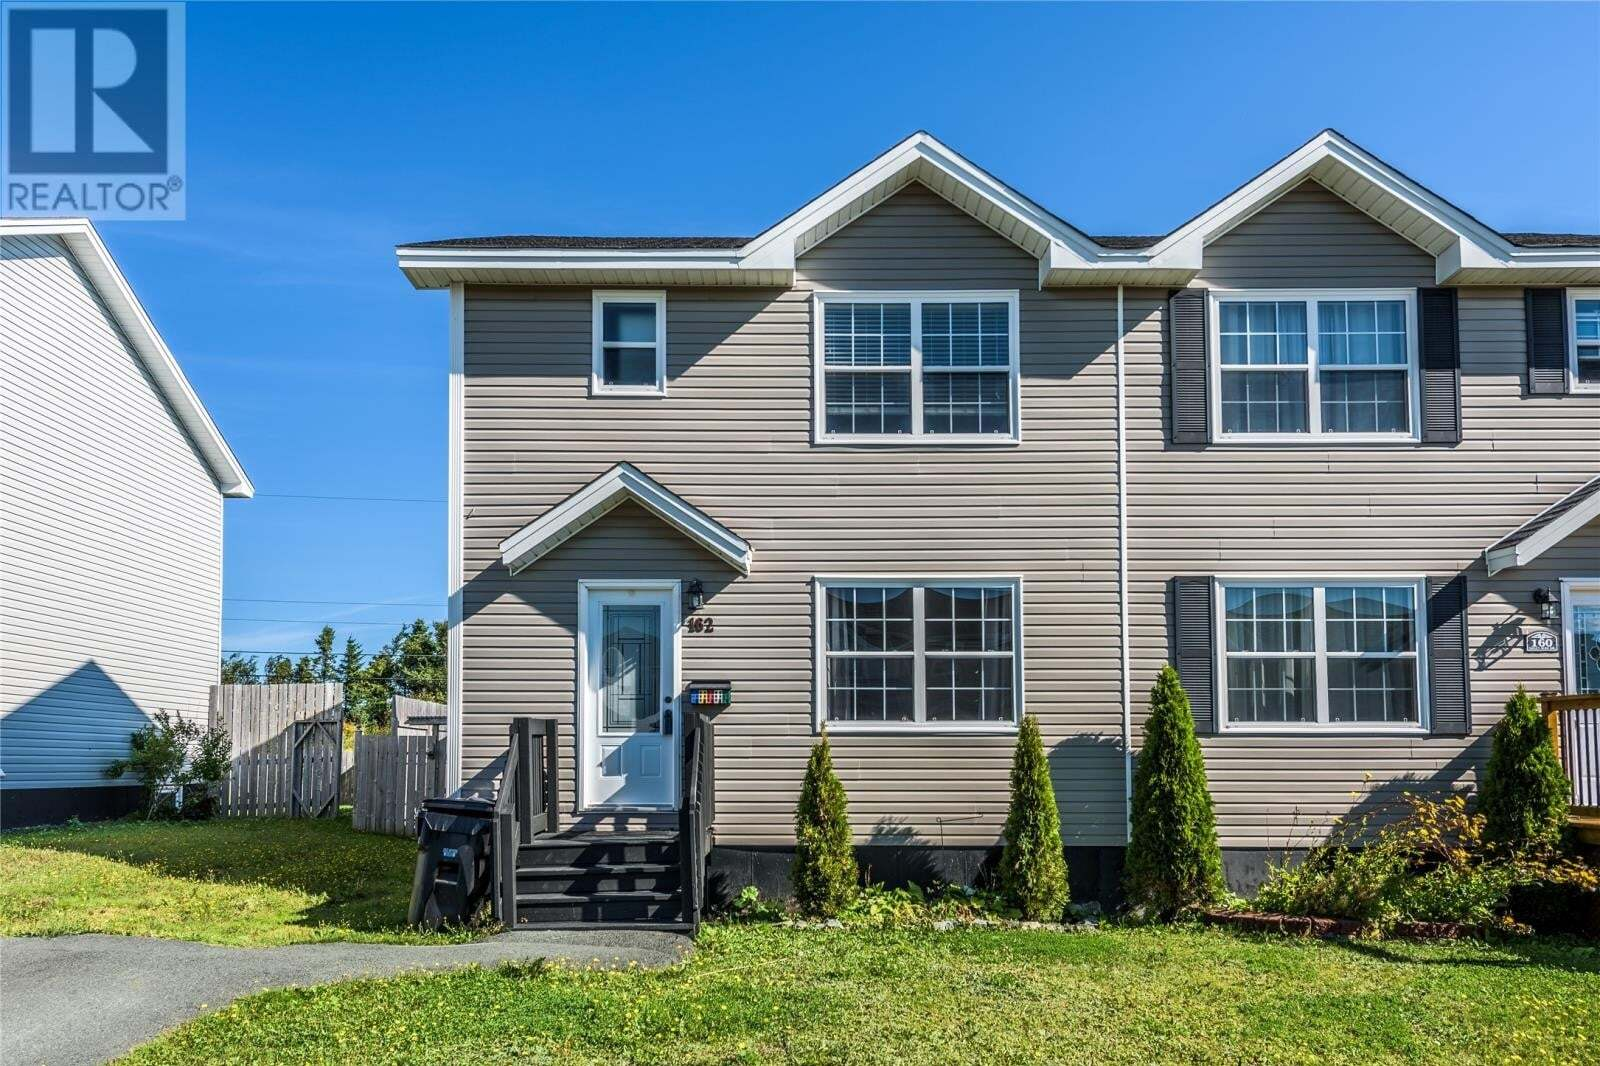 House for sale at 162 Green Acre Dr St. John's Newfoundland - MLS: 1220900